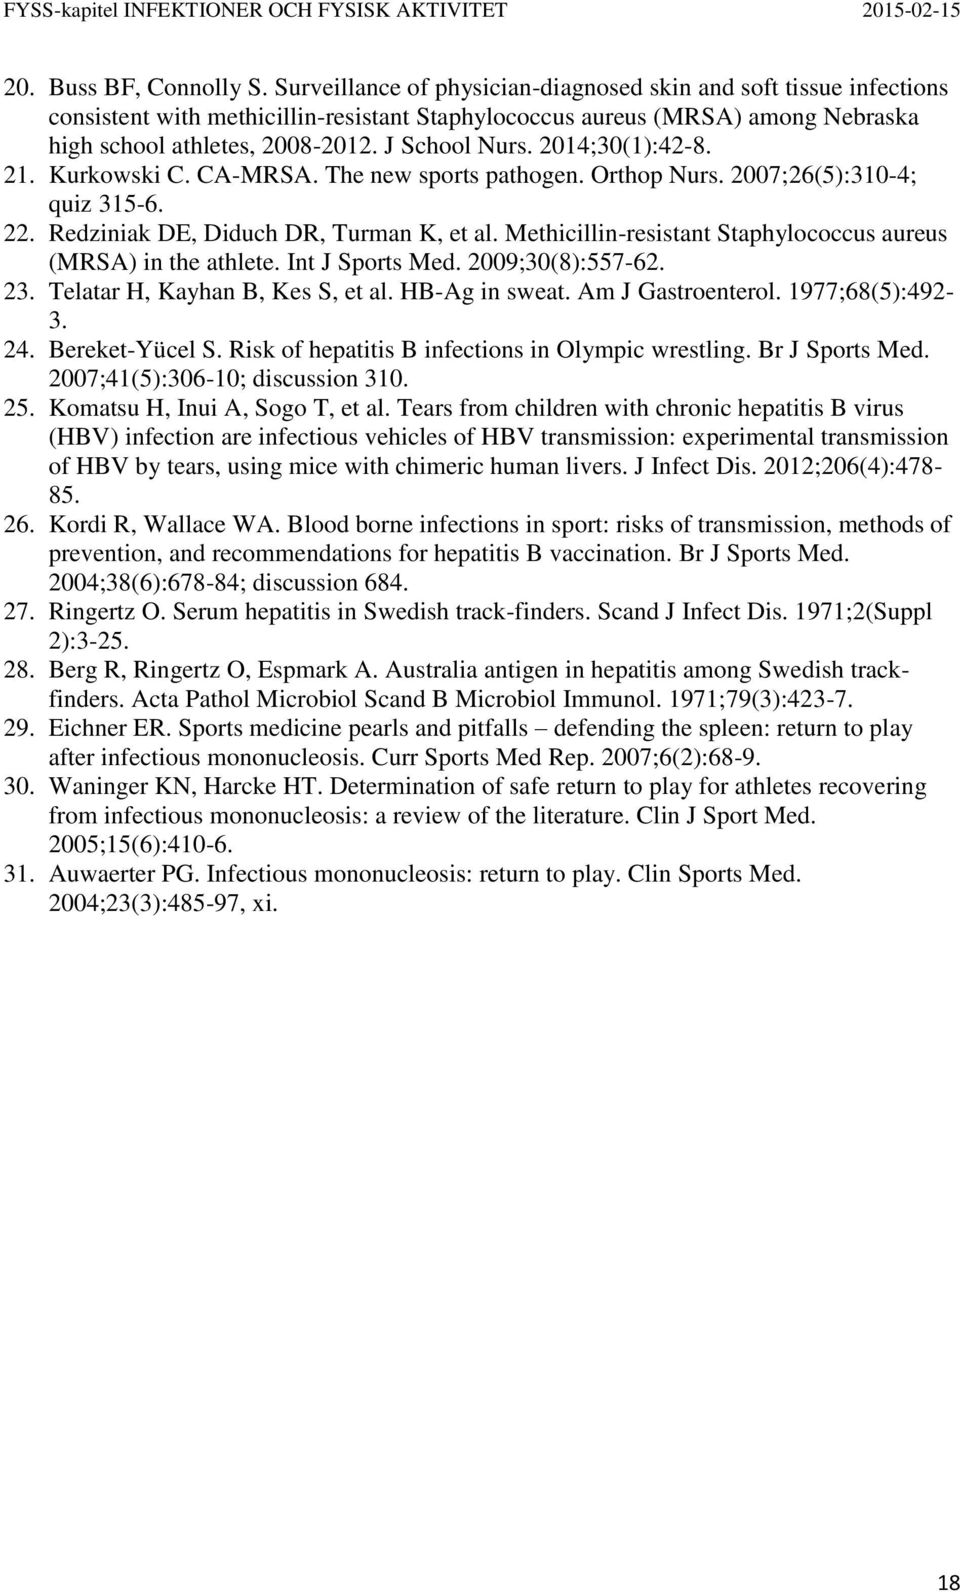 2014;30(1):42-8. 21. Kurkowski C. CA-MRSA. The new sports pathogen. Orthop Nurs. 2007;26(5):310-4; quiz 315-6. 22. Redziniak DE, Diduch DR, Turman K, et al.